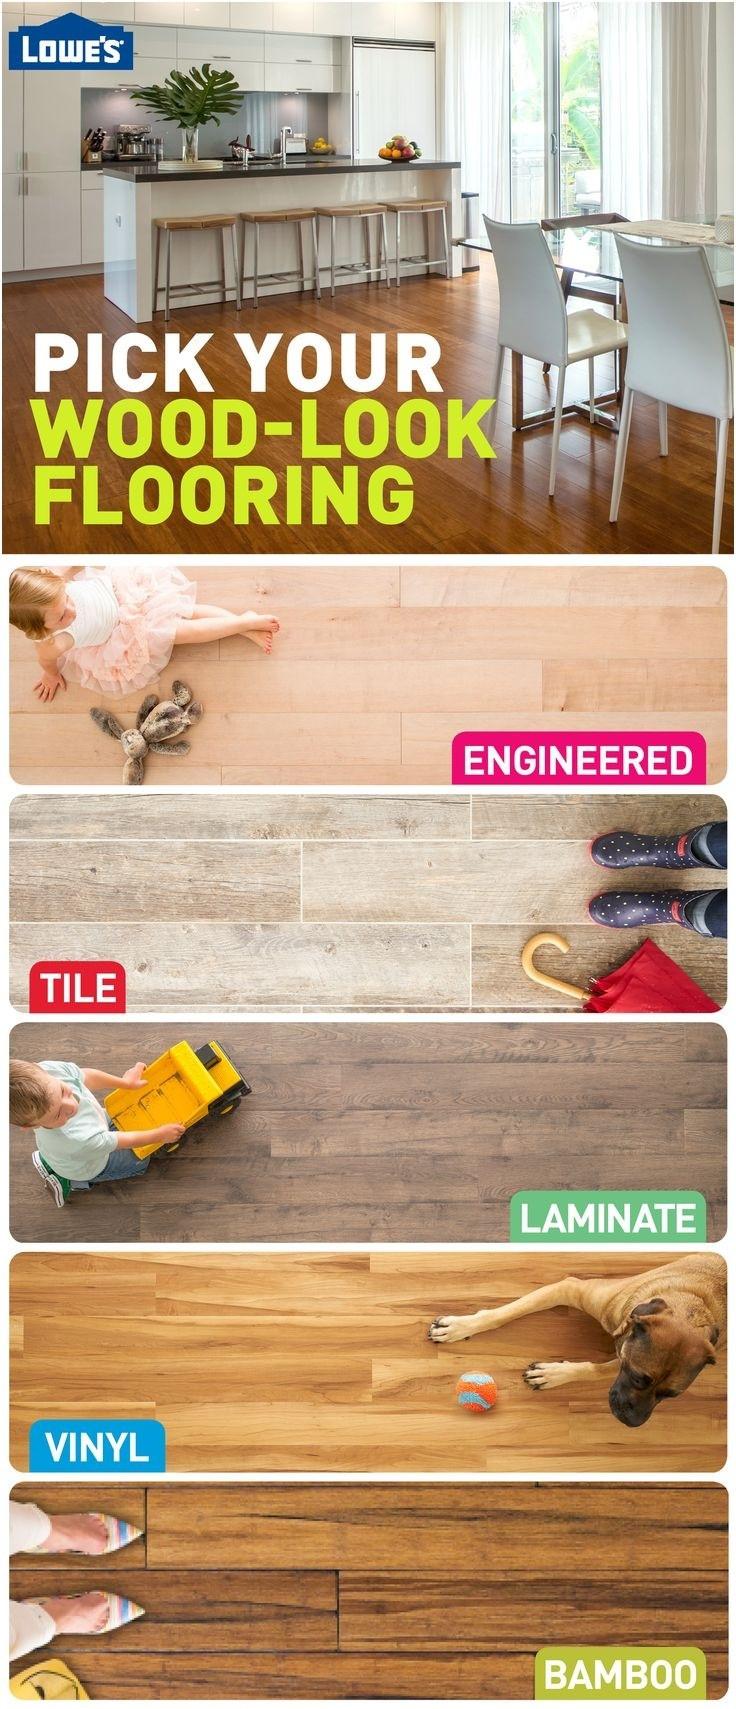 bruce hardwood floor cleaner lowes of bamboo plywood lowes unique wide plank laminate flooring lowes inside bamboo plywood lowes unique wide plank laminate flooring lowes galerie shop lumber posites at